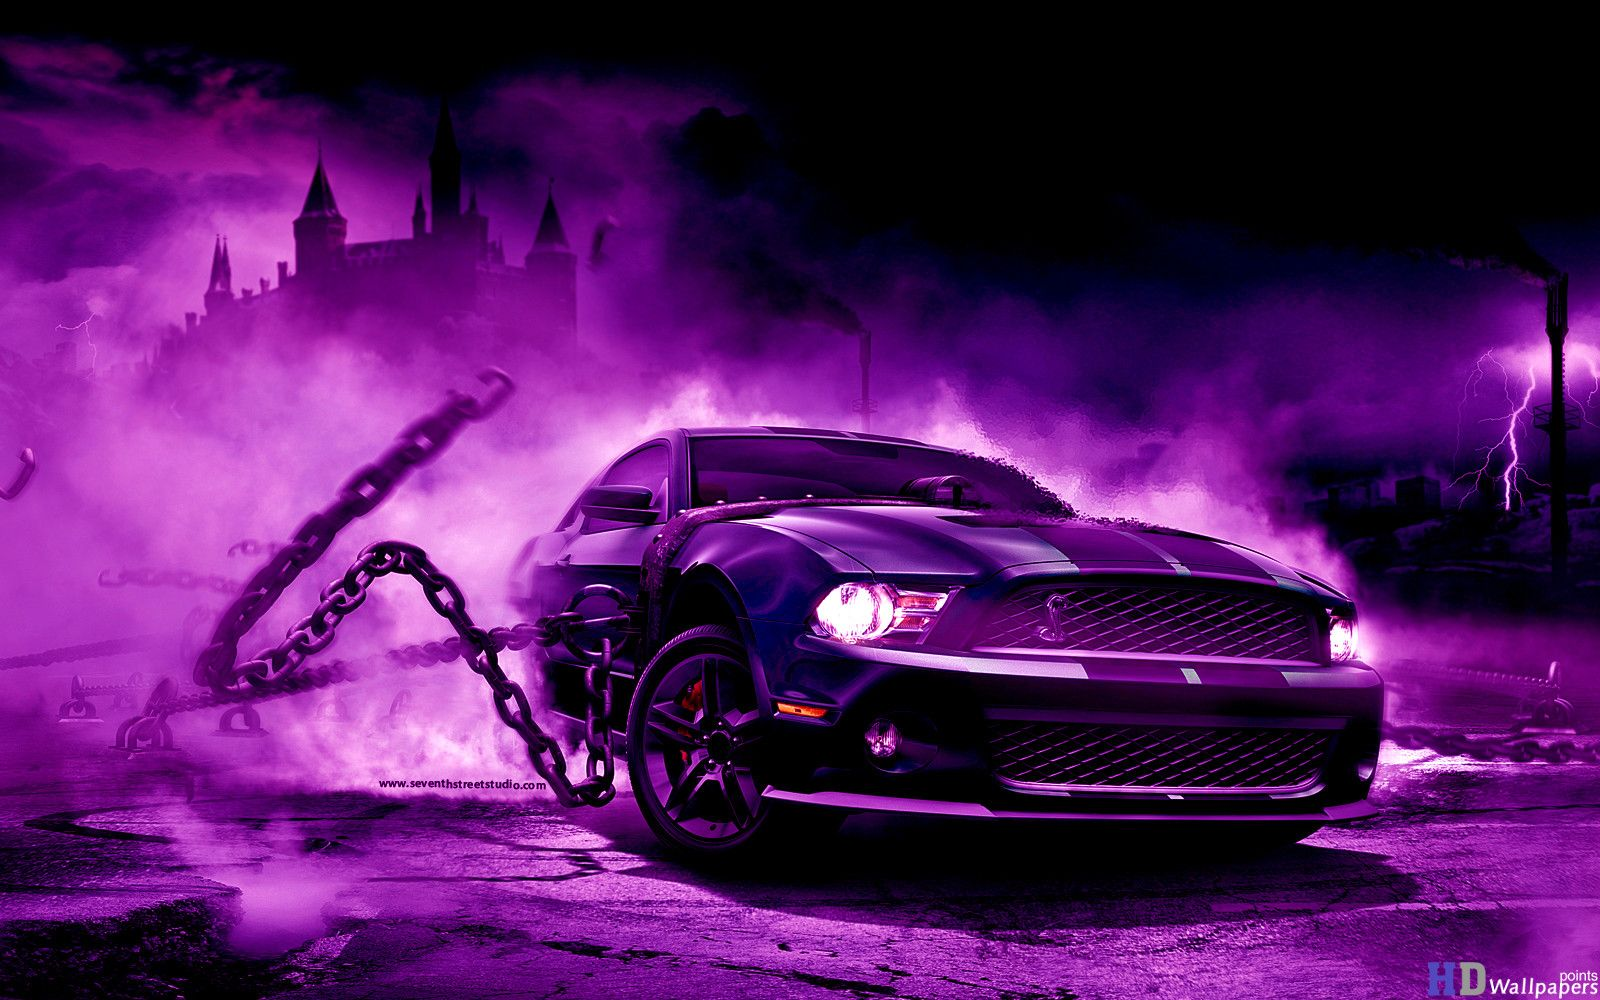 Cool car 3d wallpapers hd background desktop 14500 - Cool wallpapers for pc ...